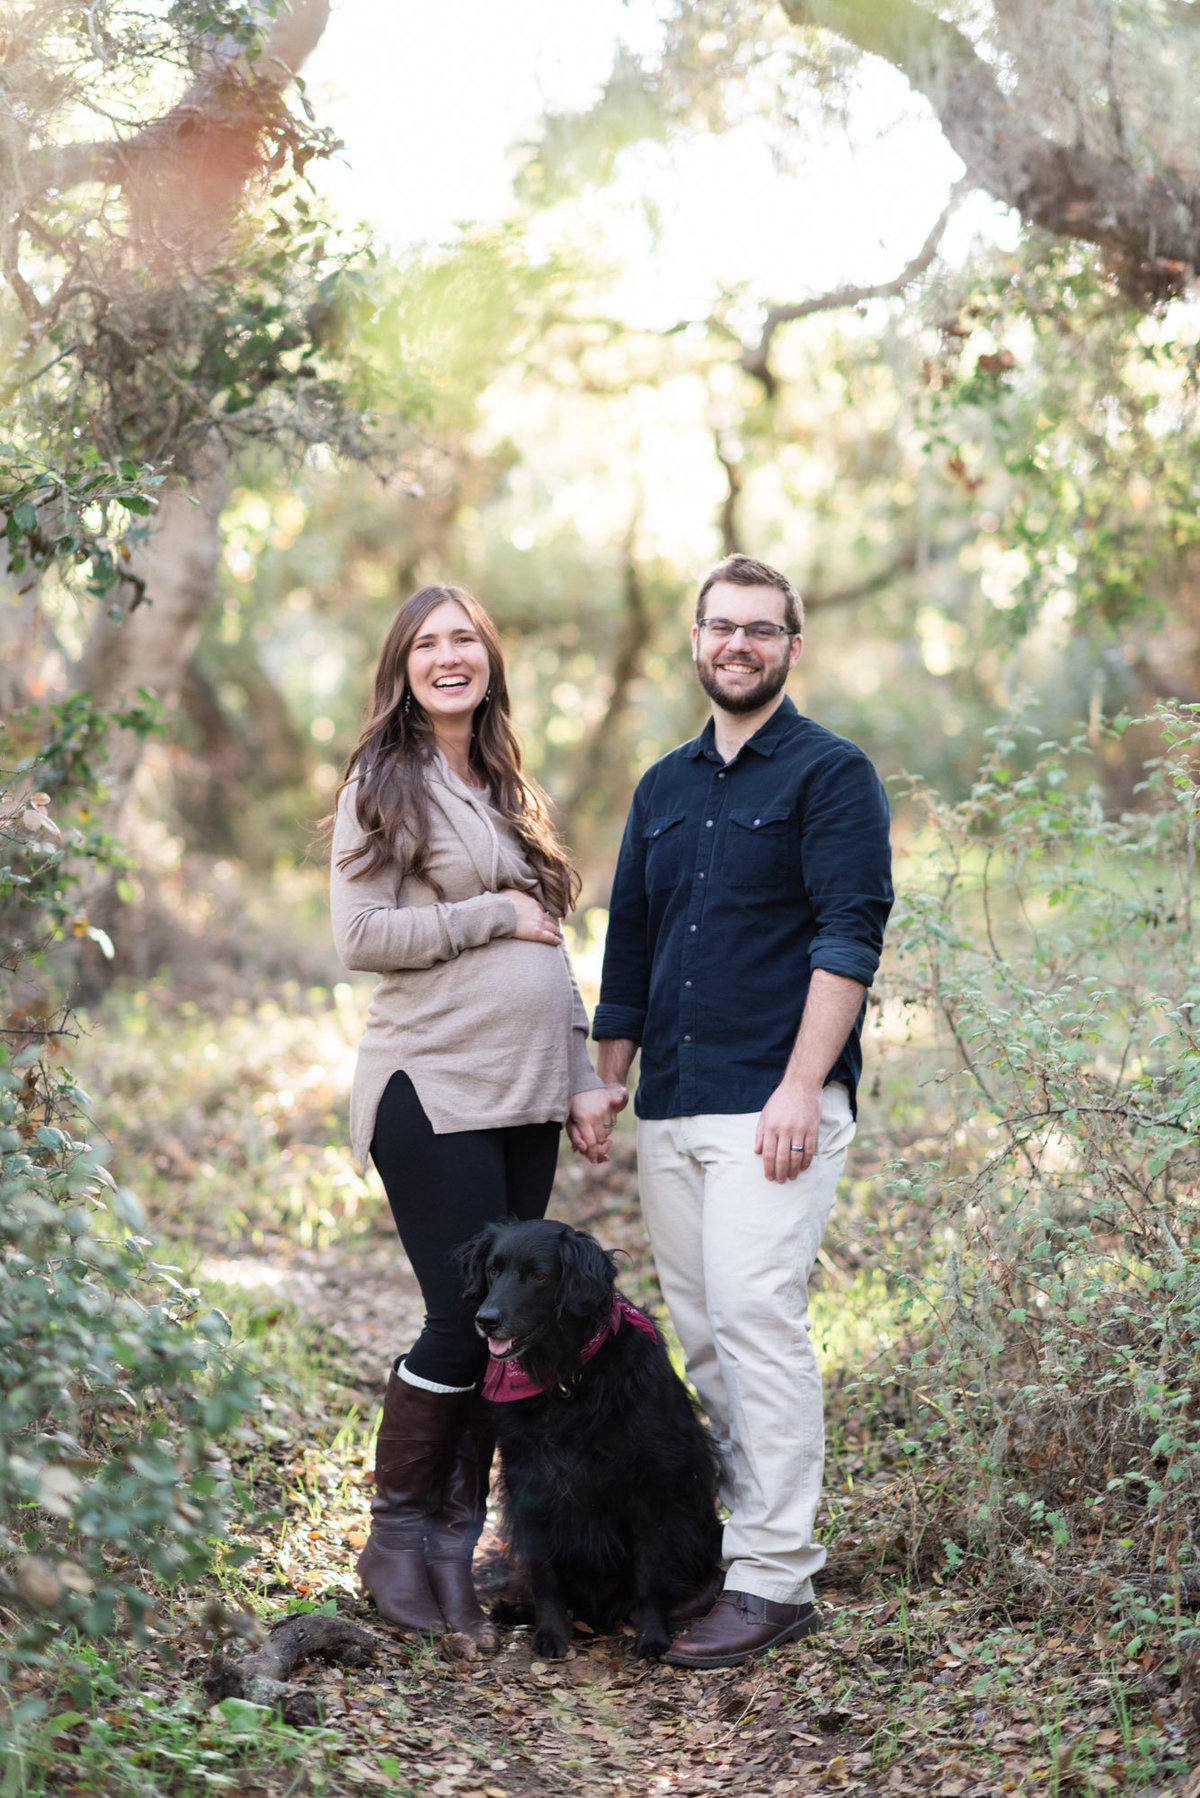 San-Luis-Obispo-Maternity-Session-by-Kirsten-Bullard-Photography-9